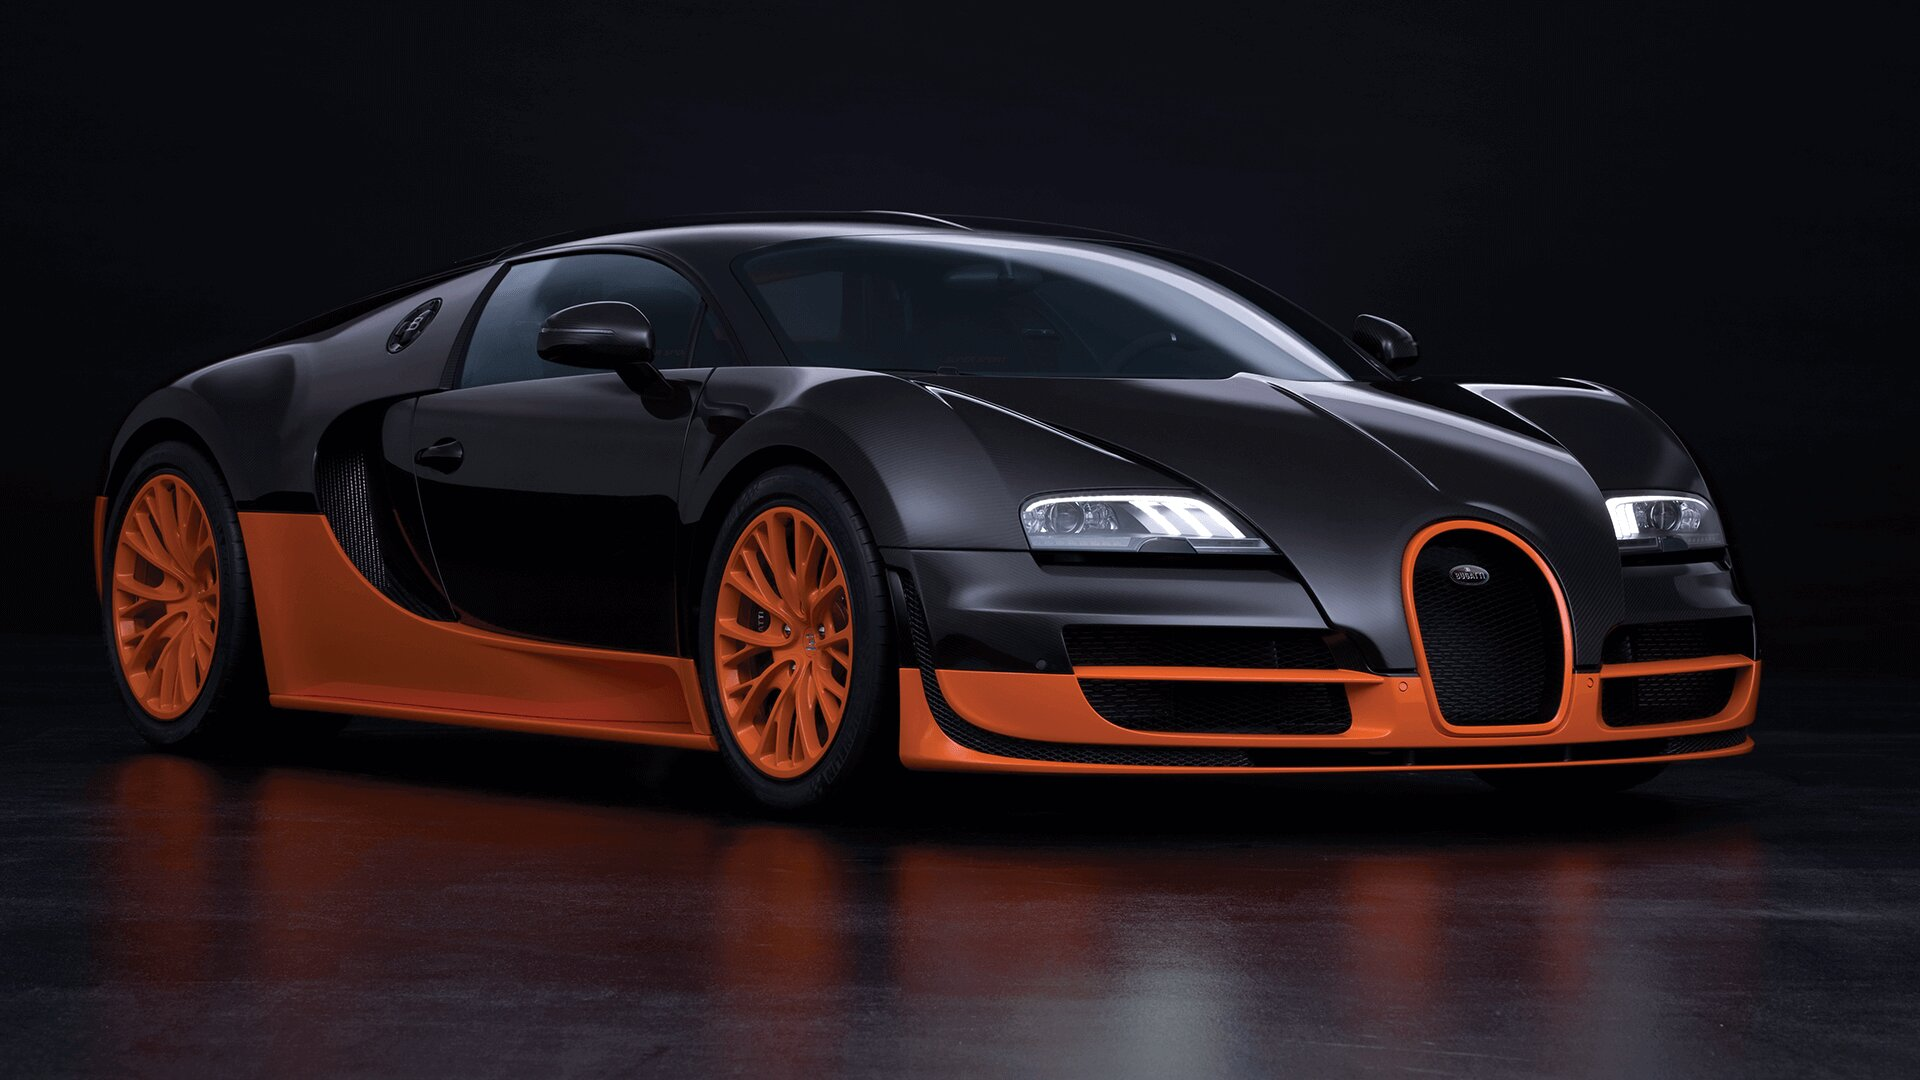 sport black diamond grand le tutte red edizioni alesupercars vitesse orig veyron bugatti speciali and